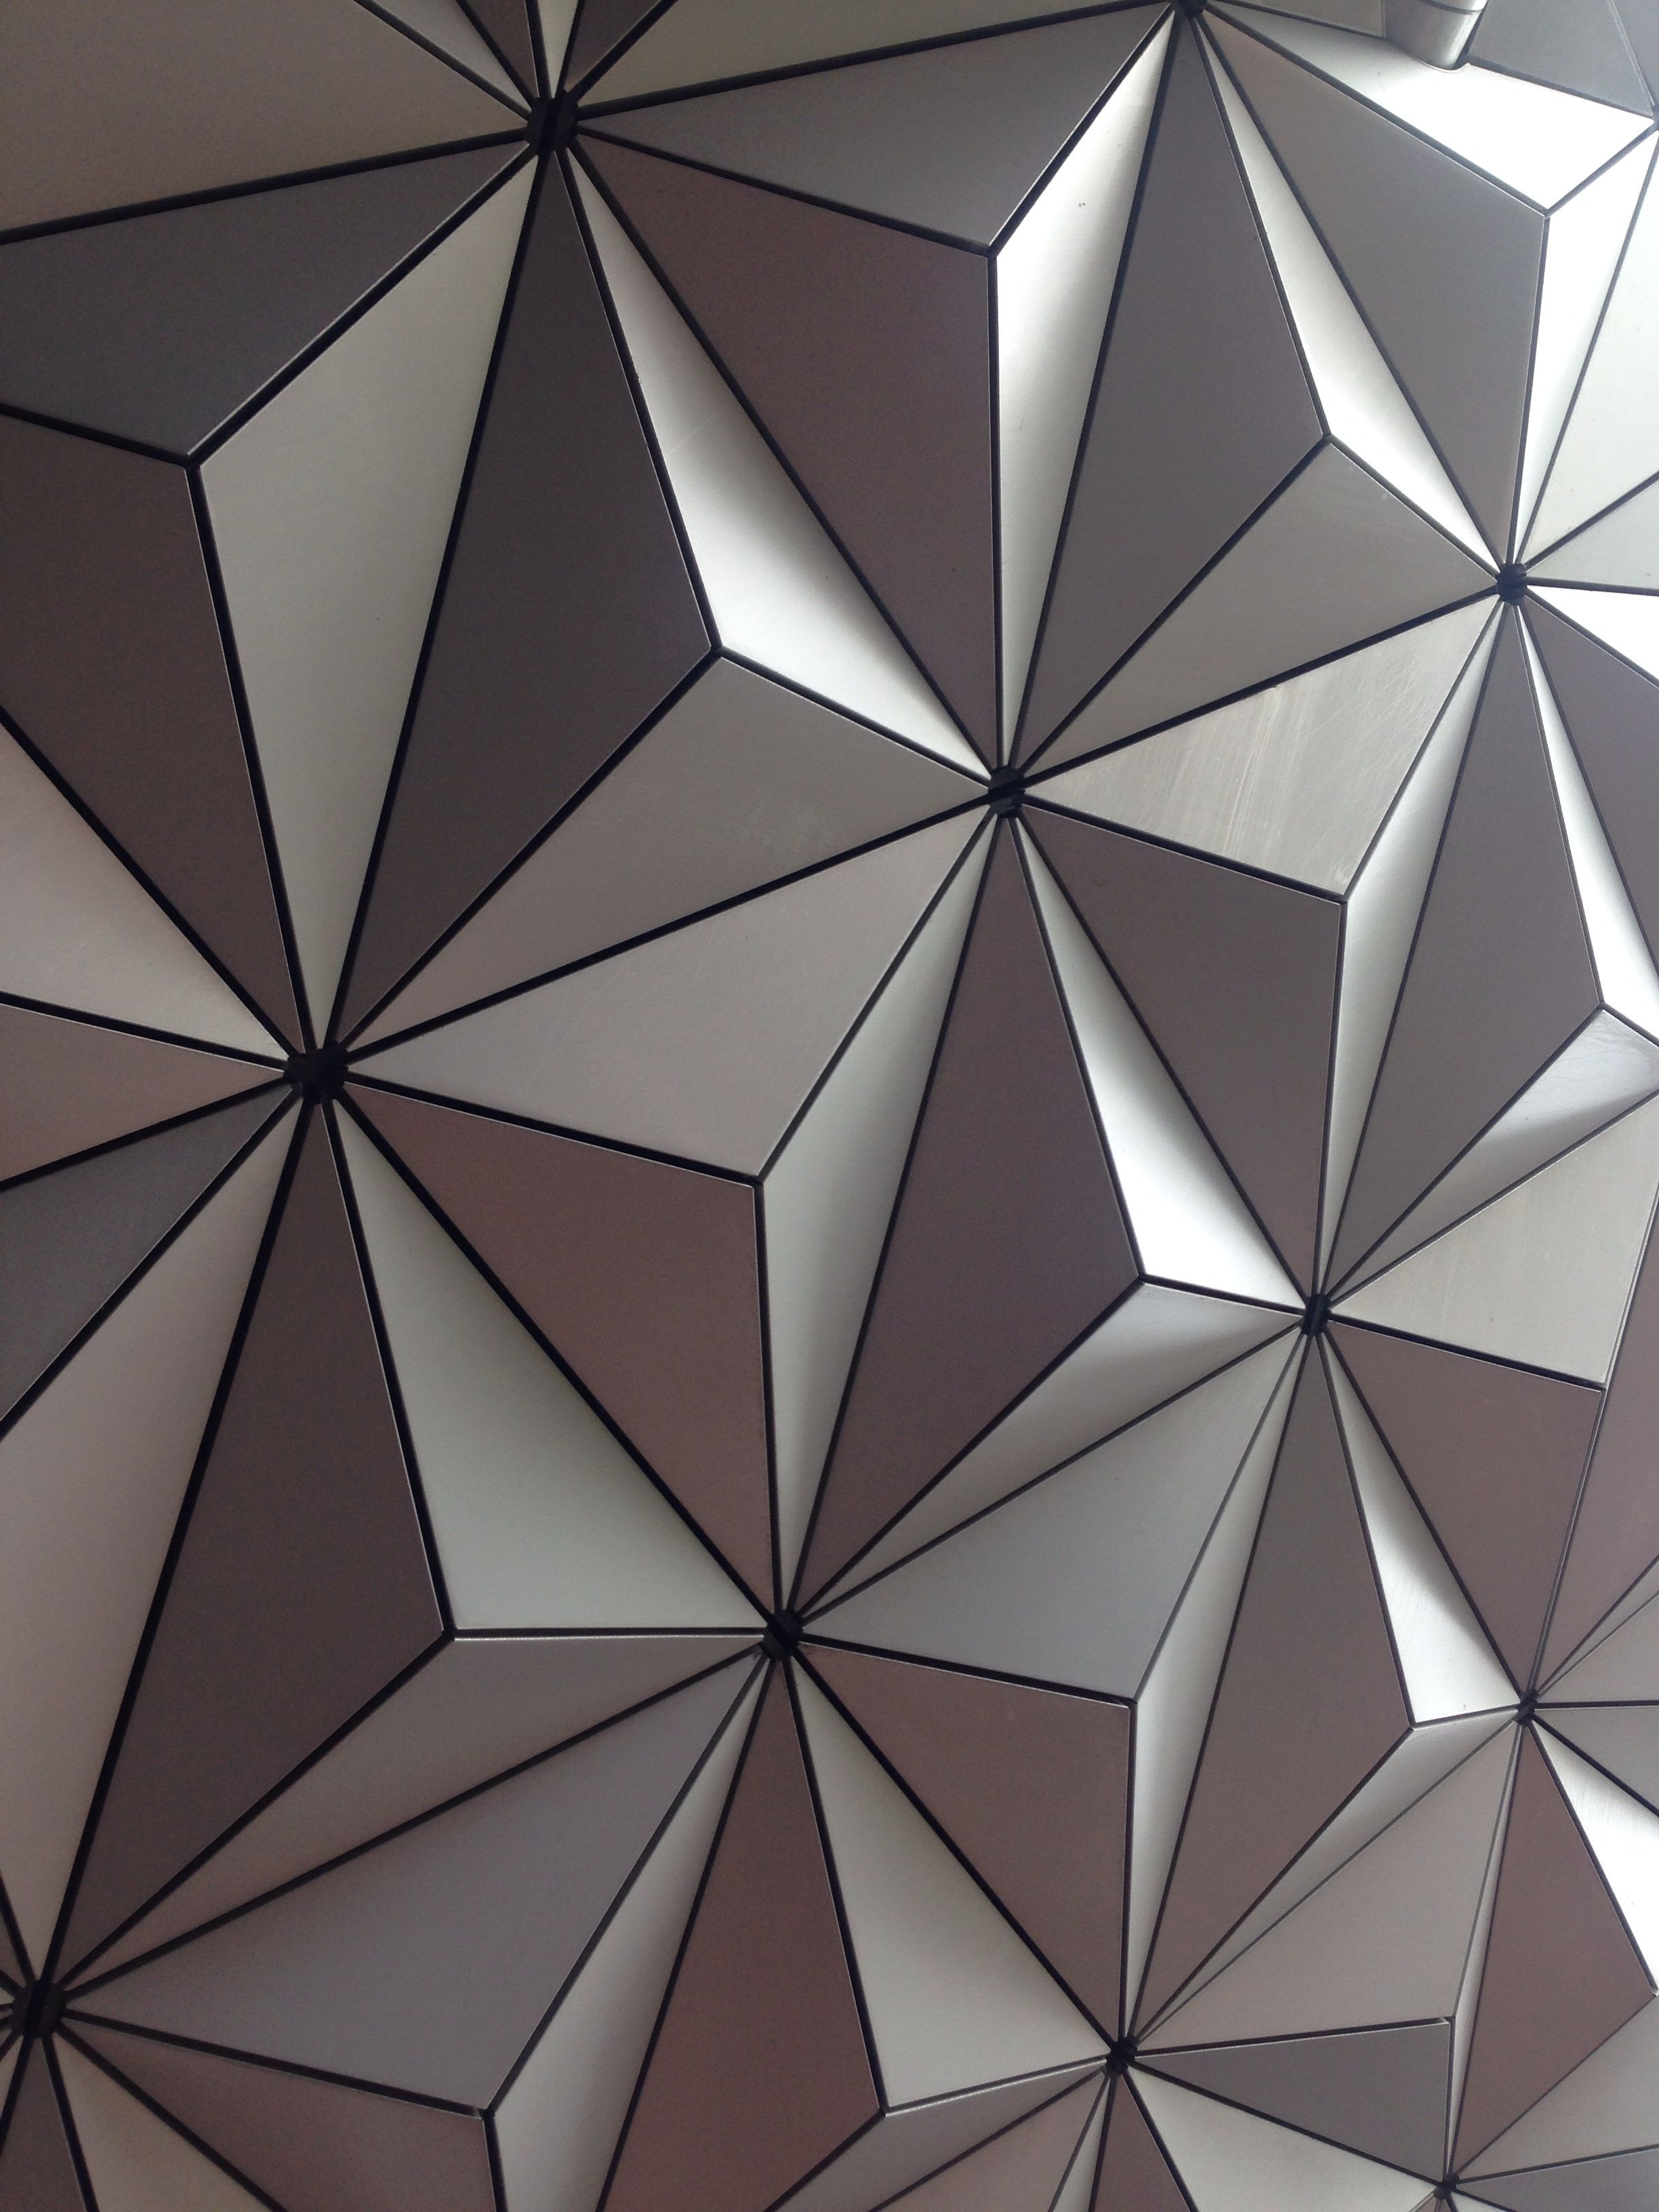 Epcot Globe Faceted Surface At Disney Faceted Design Wall Design Ceiling Design